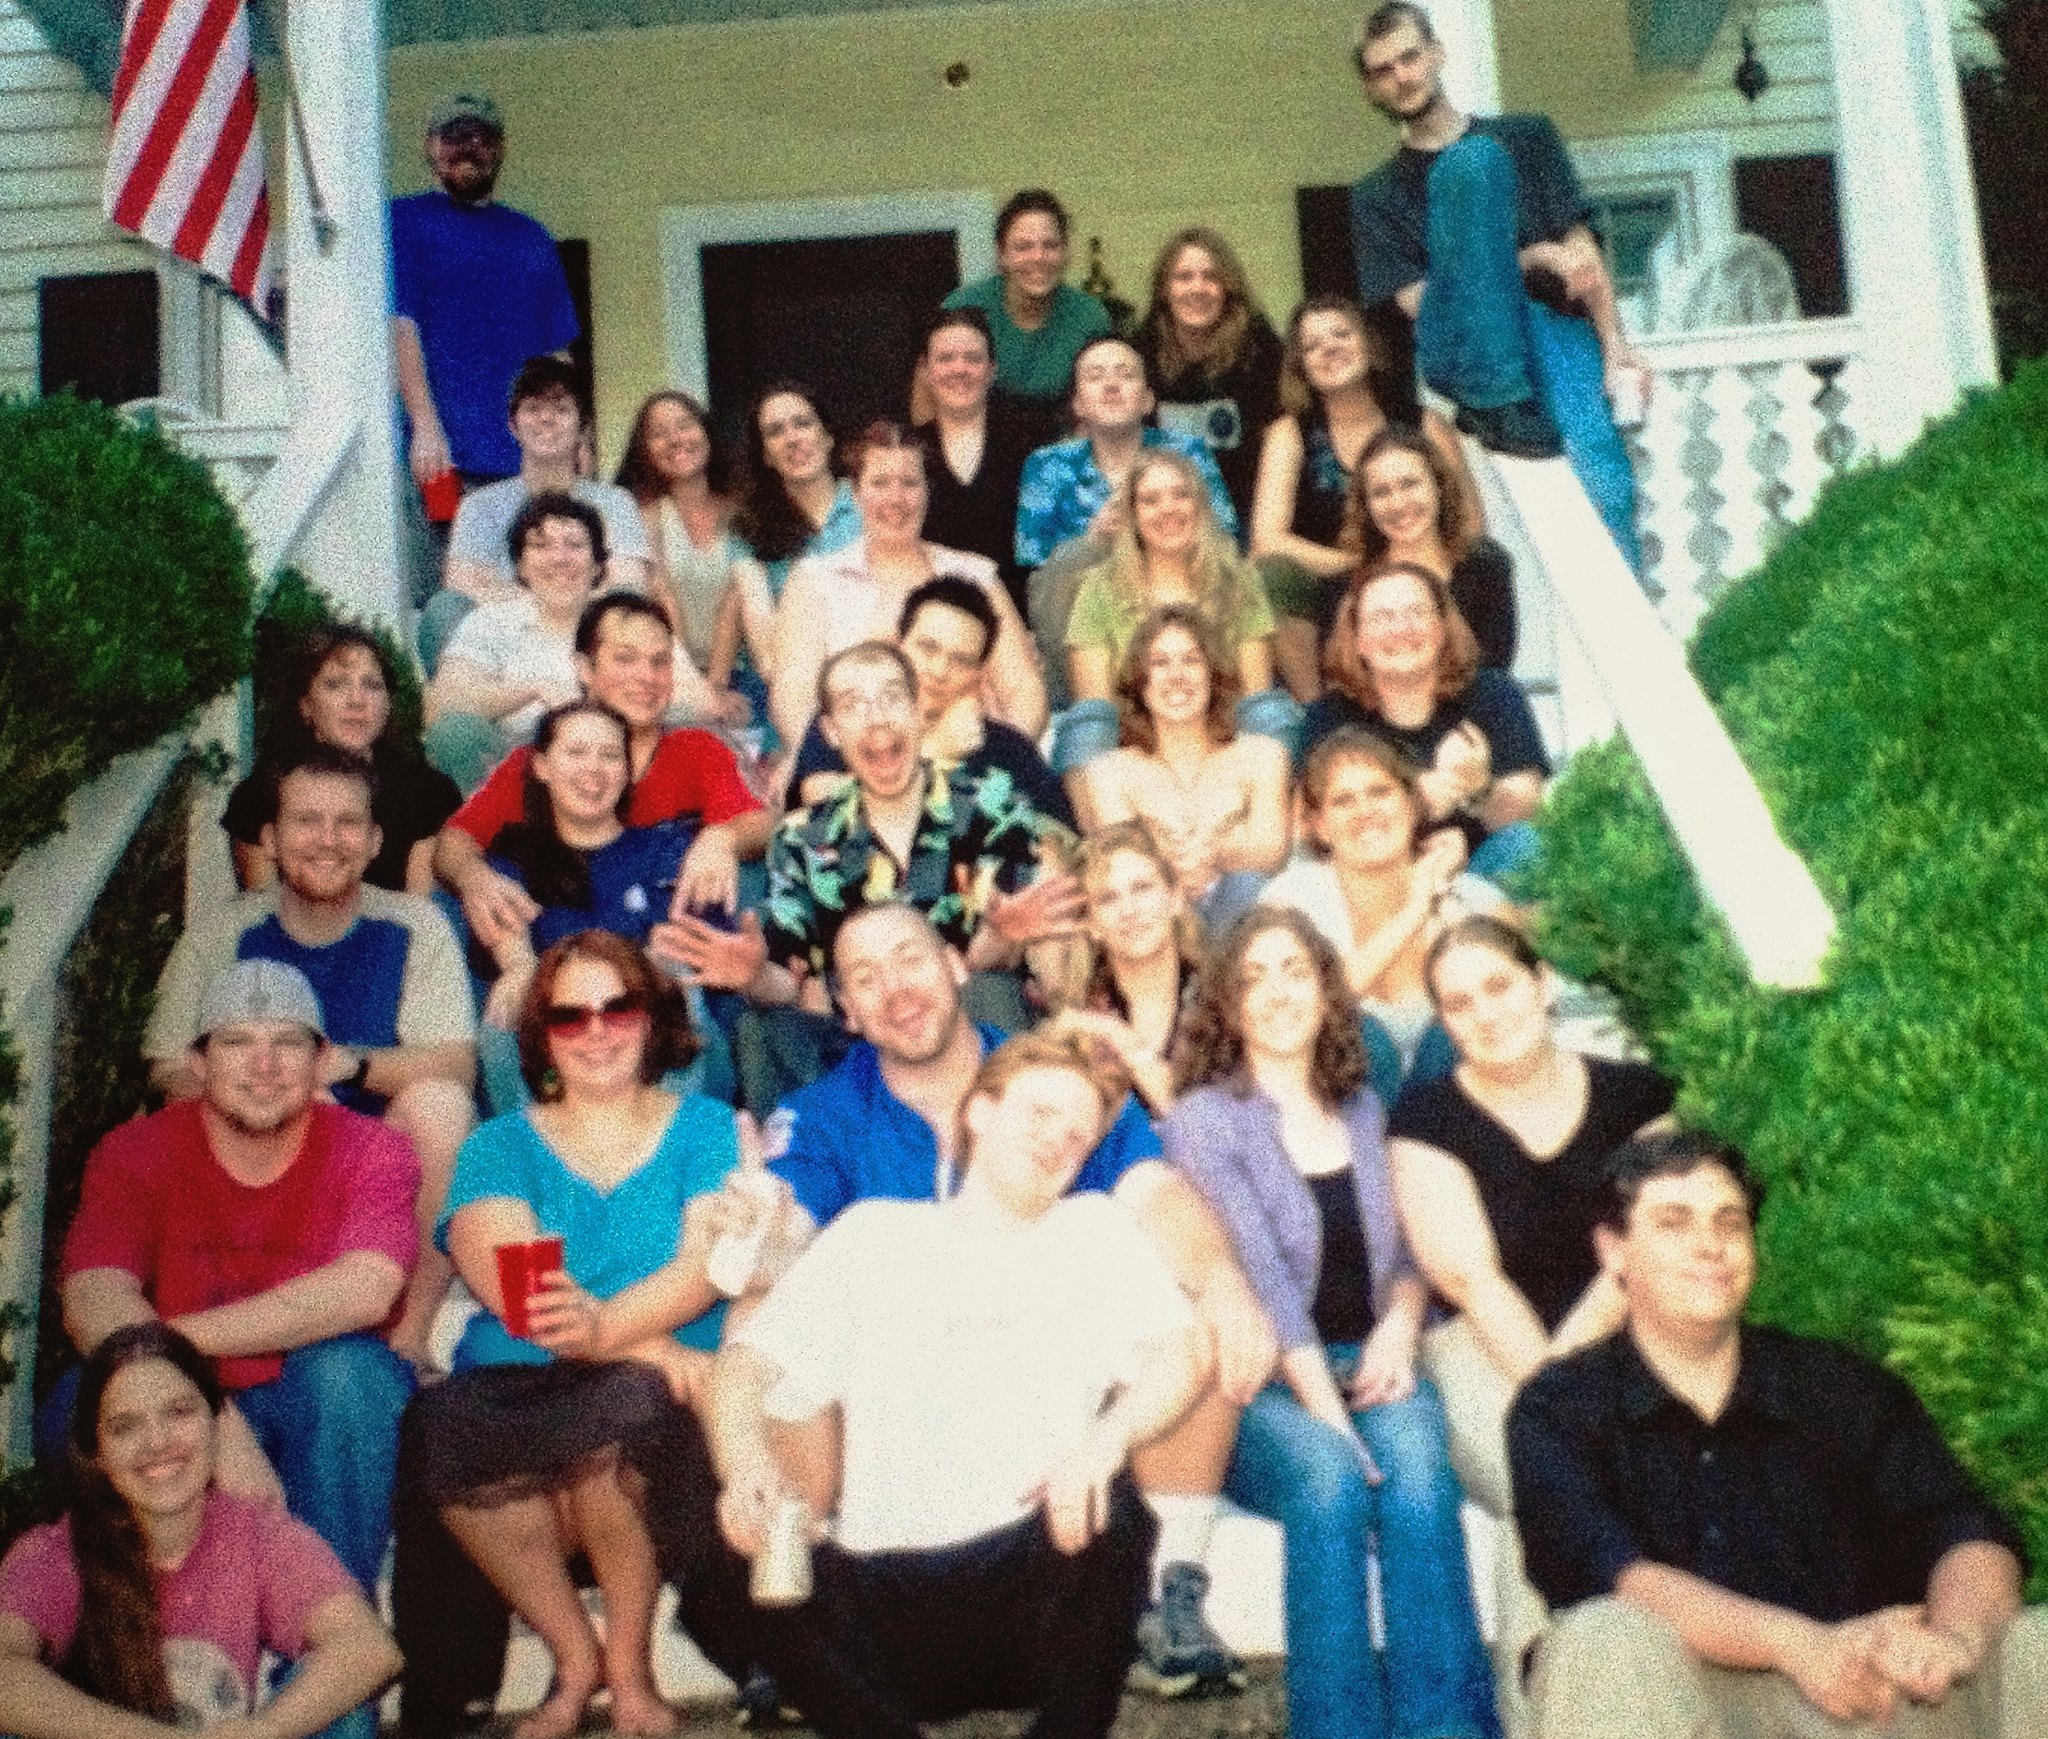 Some, but not all, of the people in this story were at this party in August of 2005.